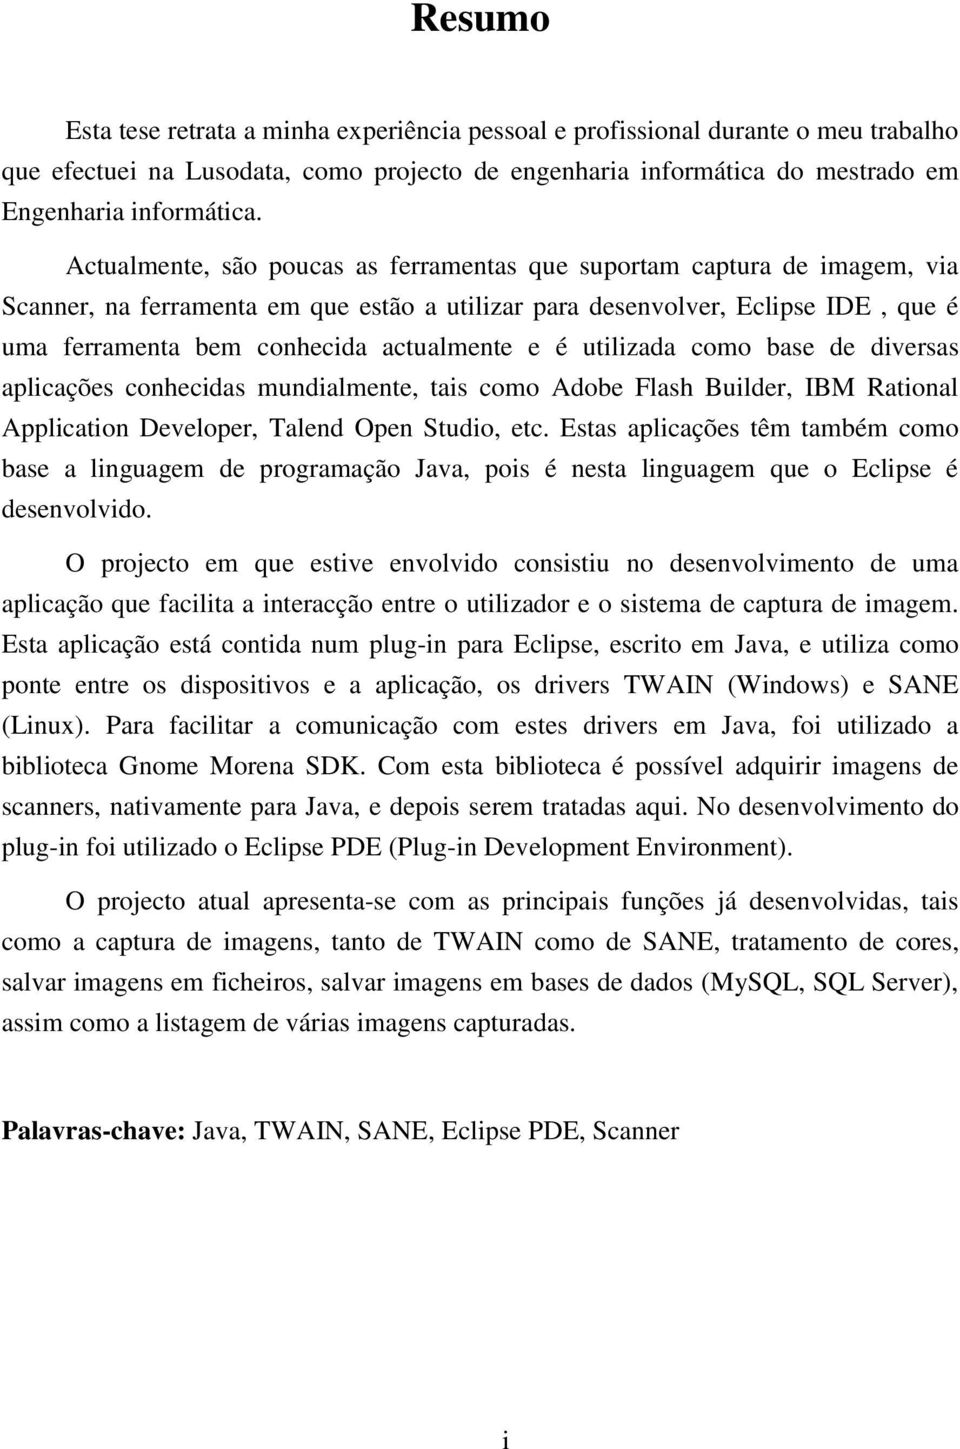 e é utilizada como base de diversas aplicações conhecidas mundialmente, tais como Adobe Flash Builder, IBM Rational Application Developer, Talend Open Studio, etc.